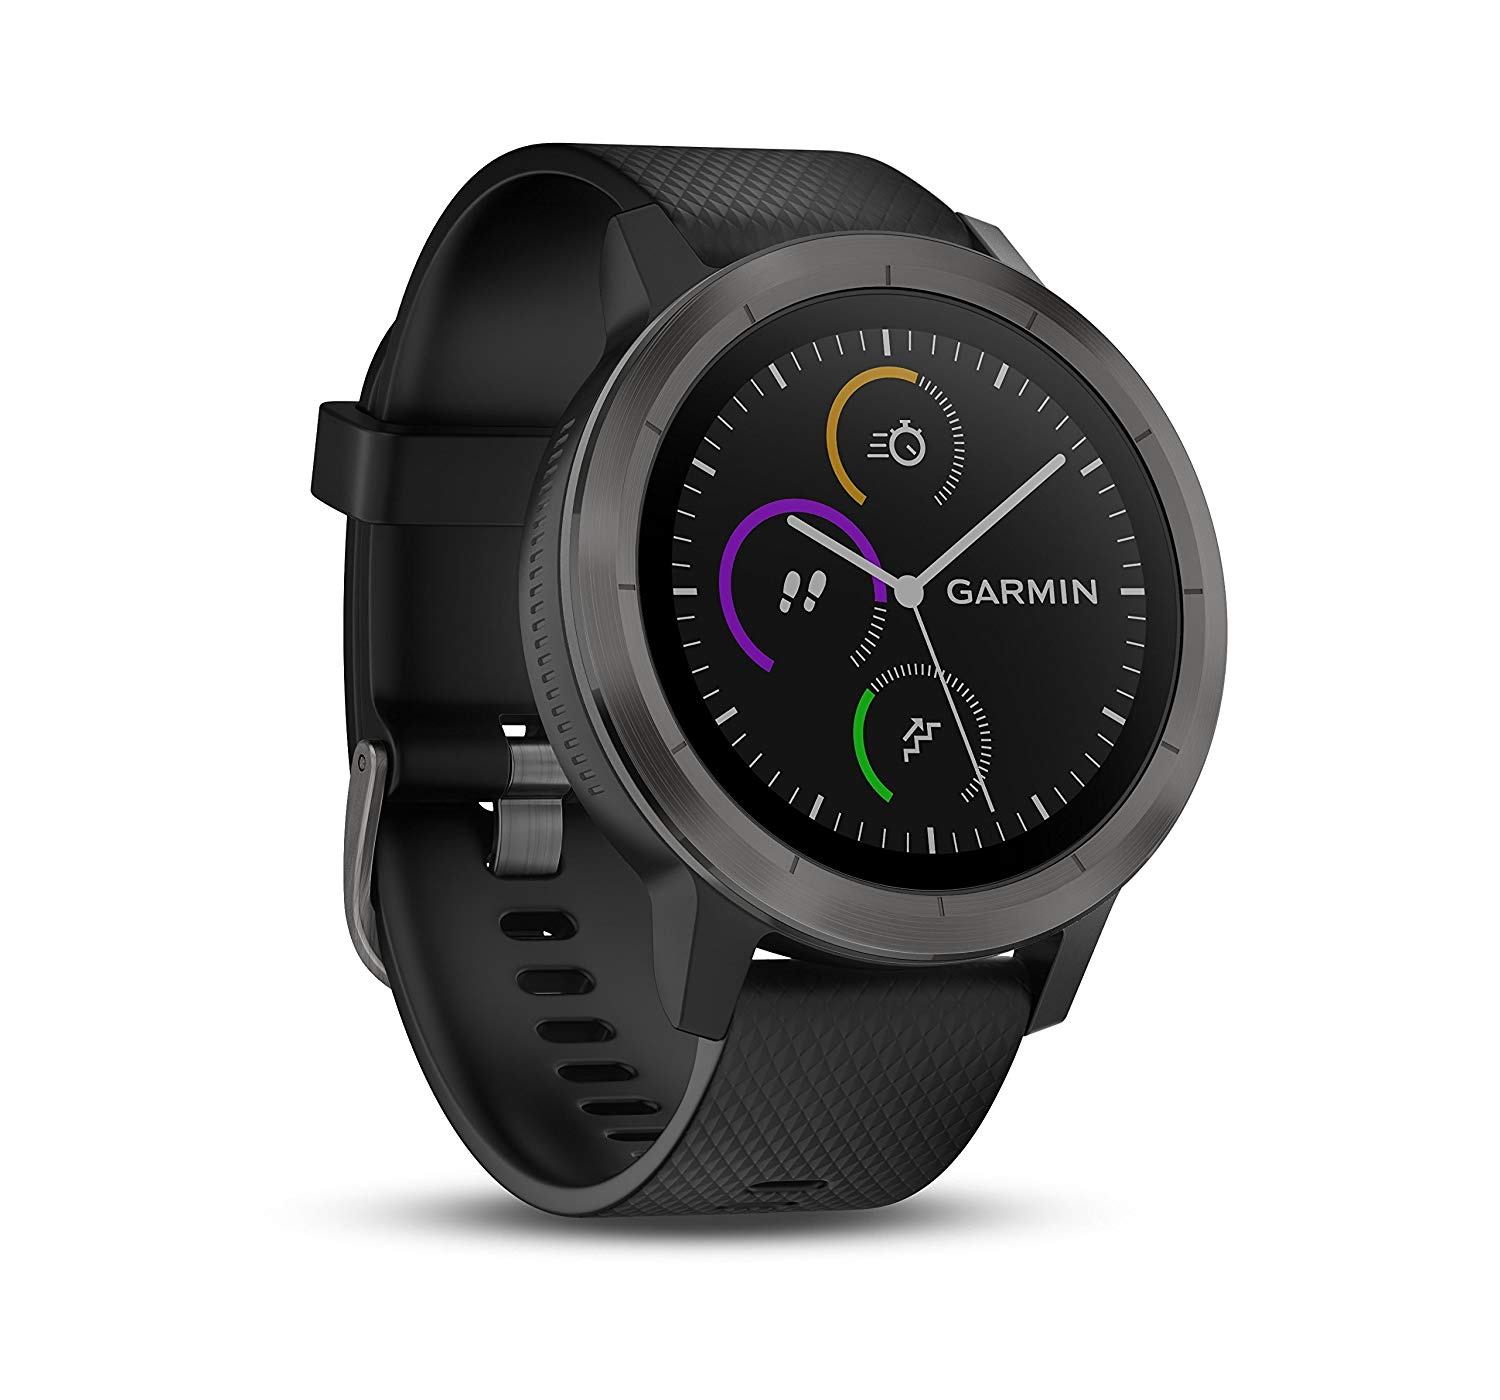 amazon prime day deals - cheap garmin